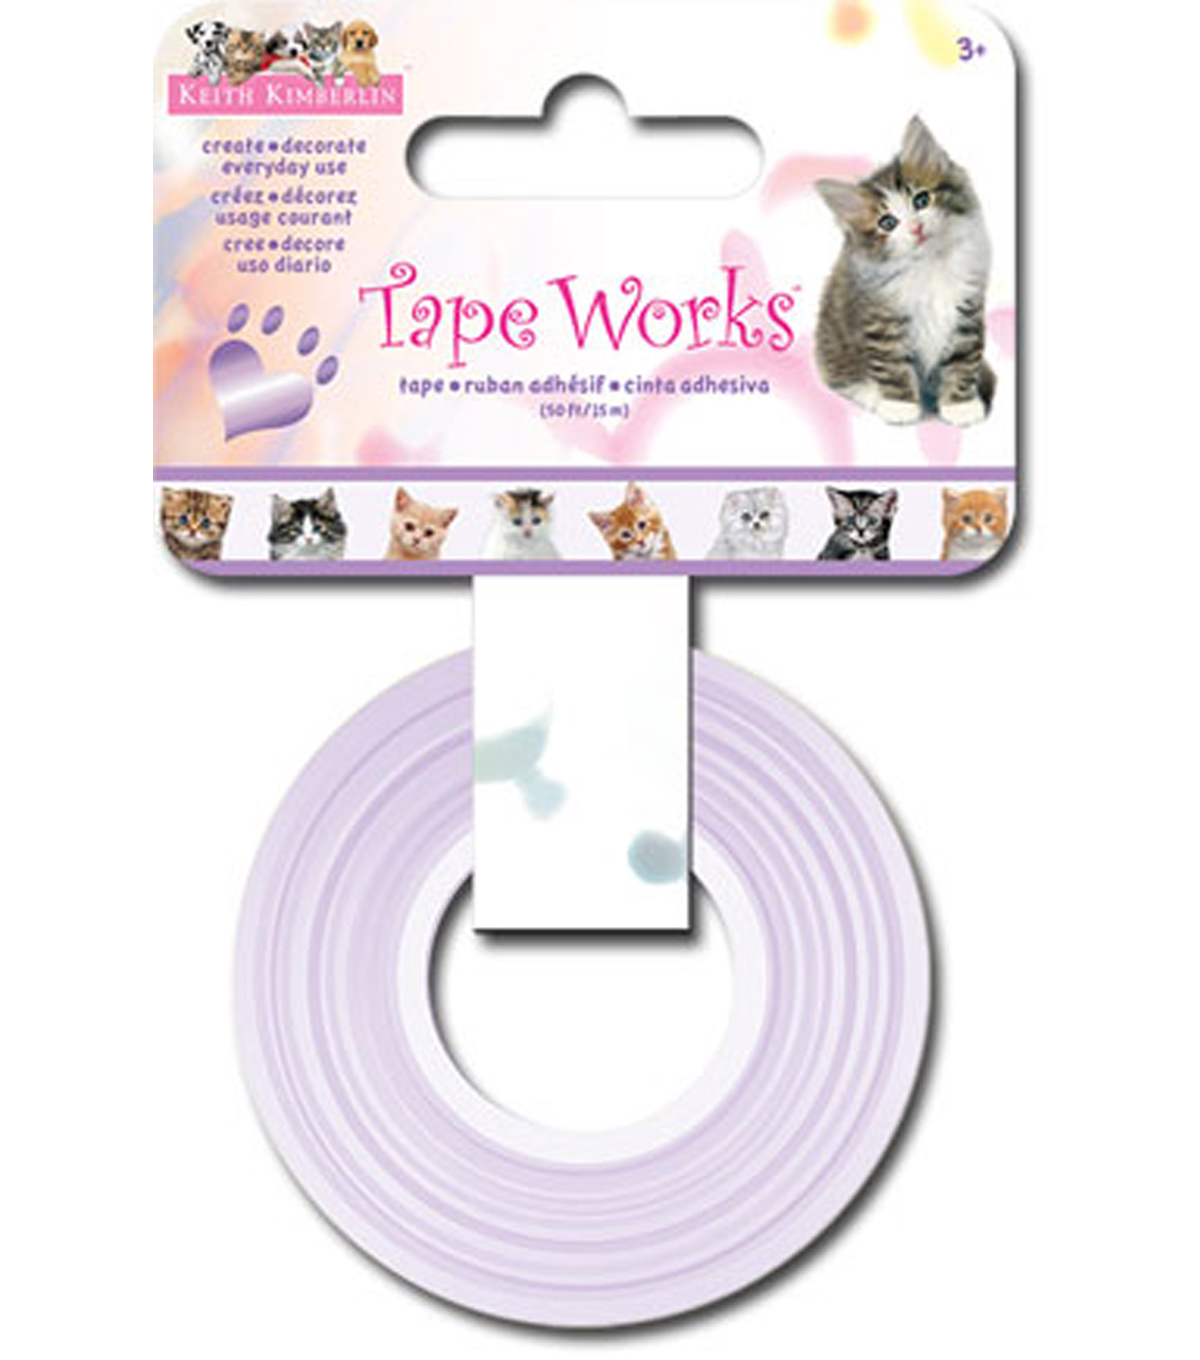 Kittens Kimberlin Tape